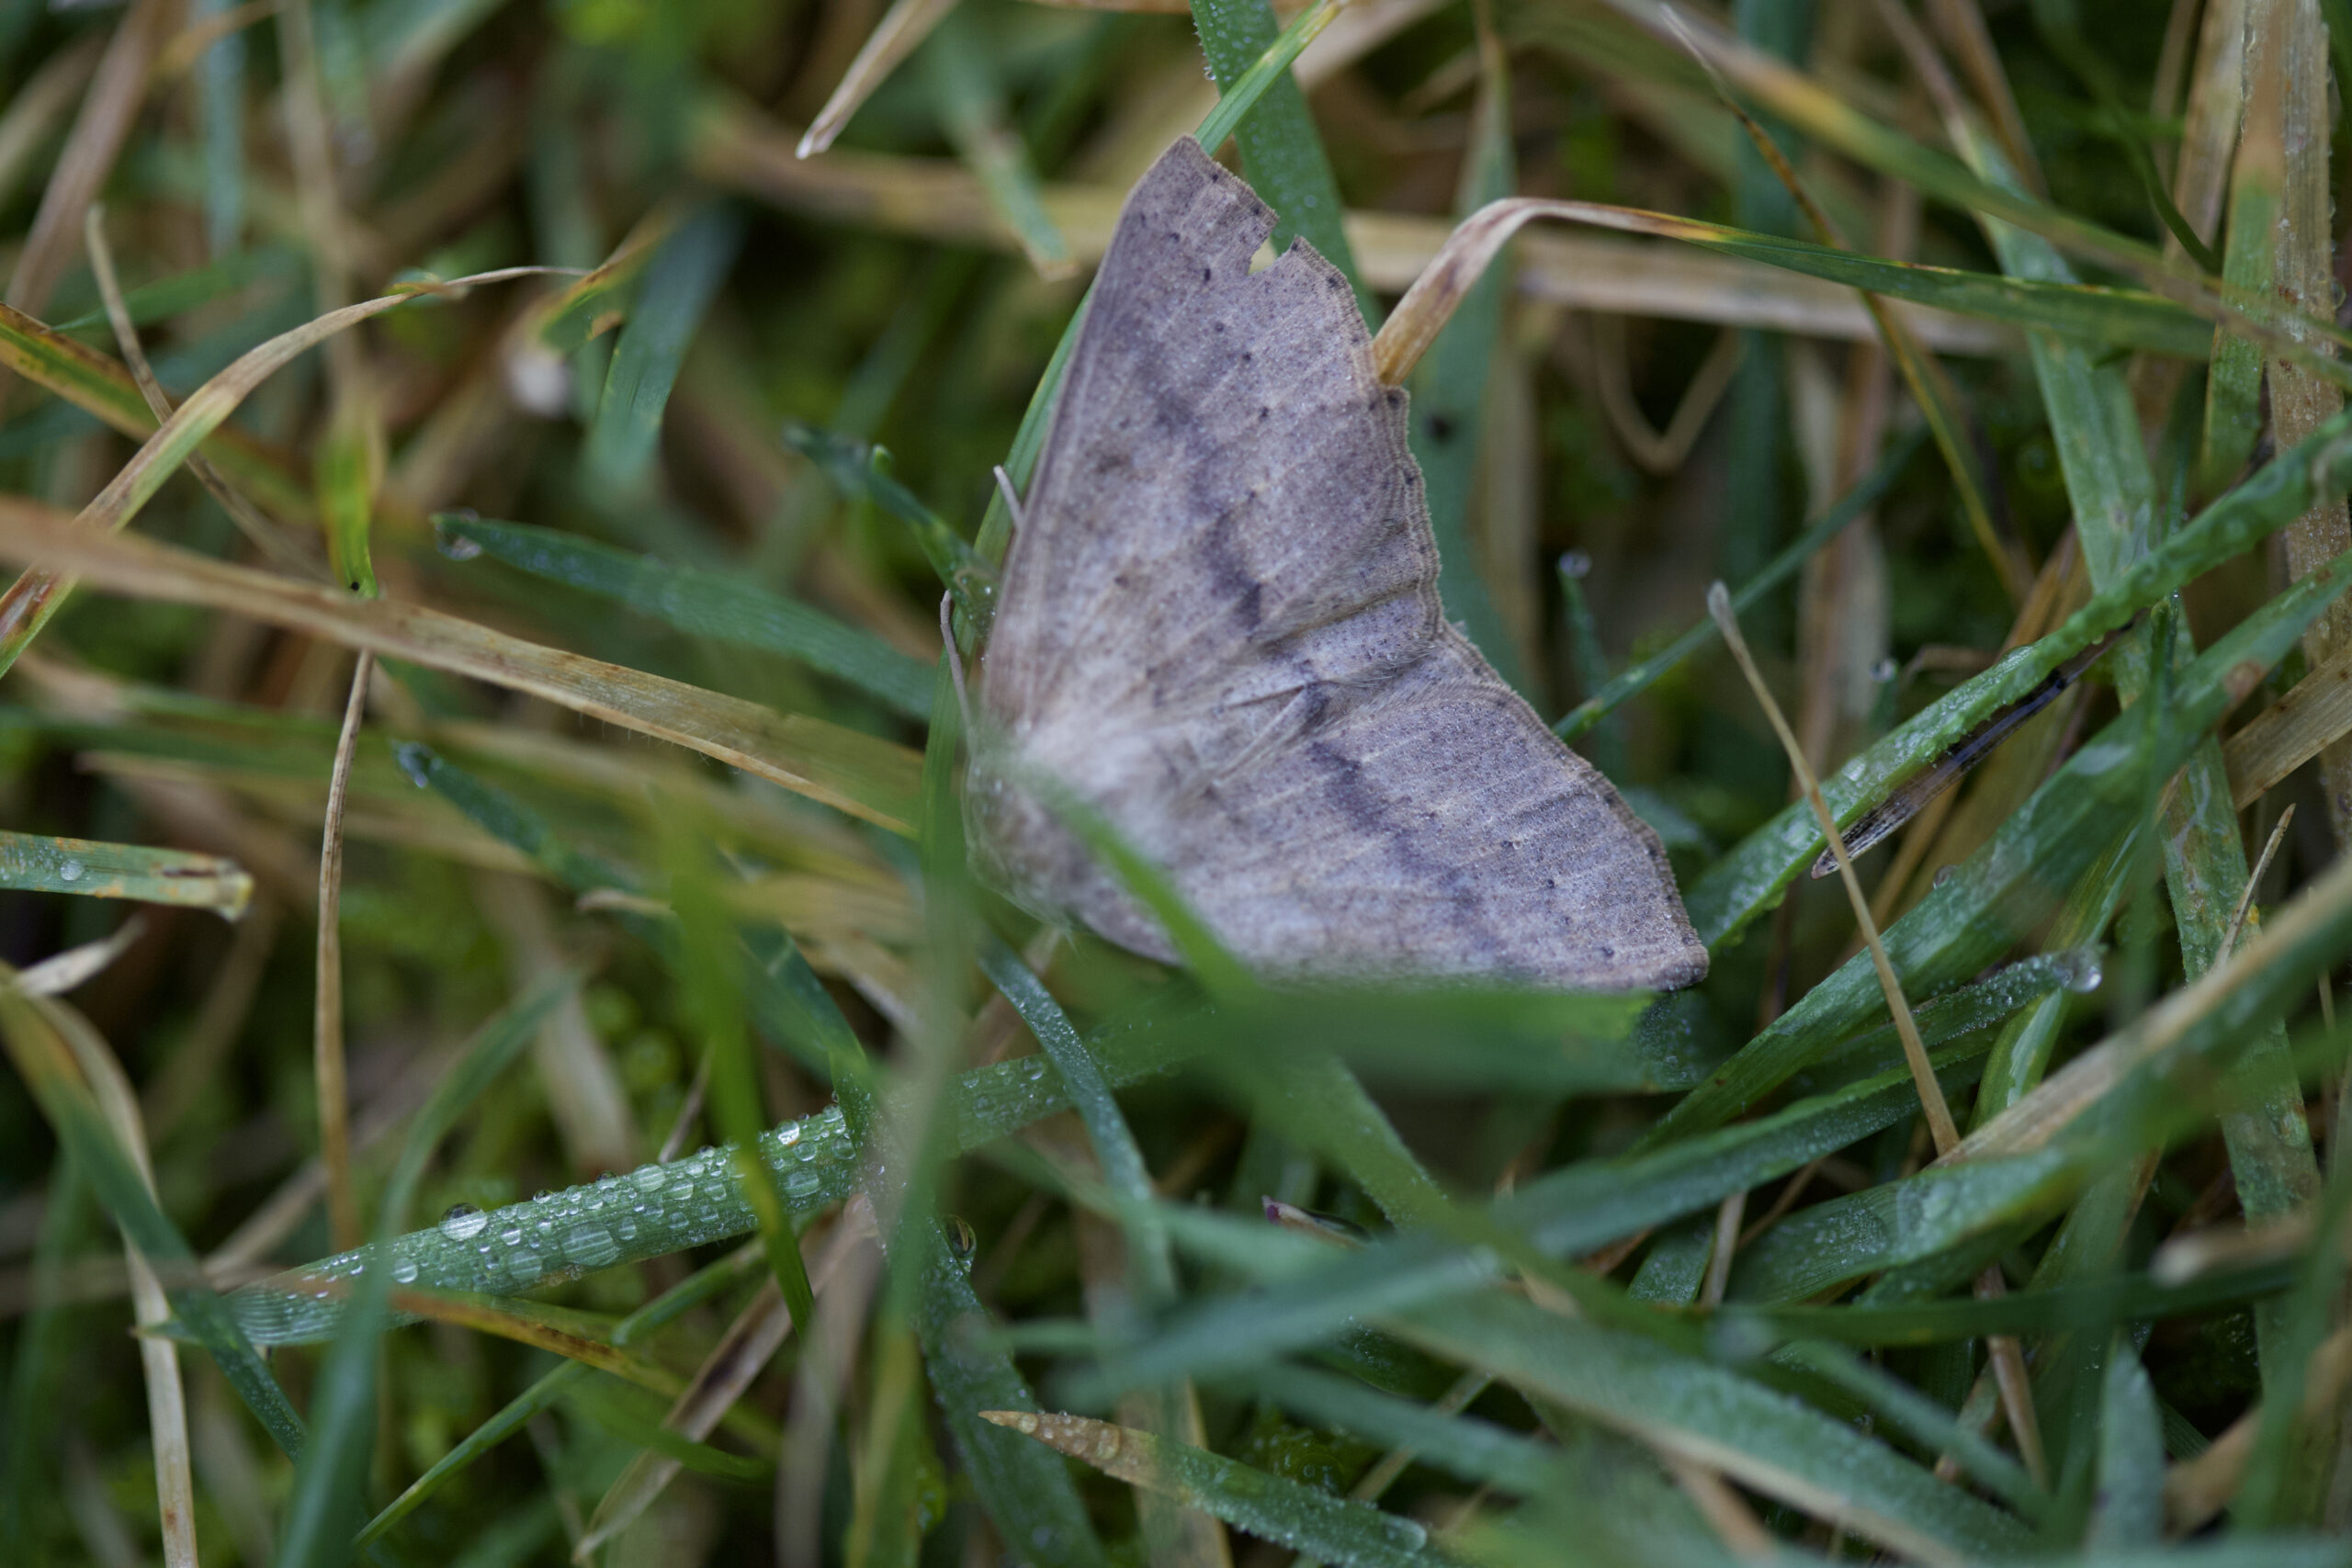 Moth perched on a blade of grass